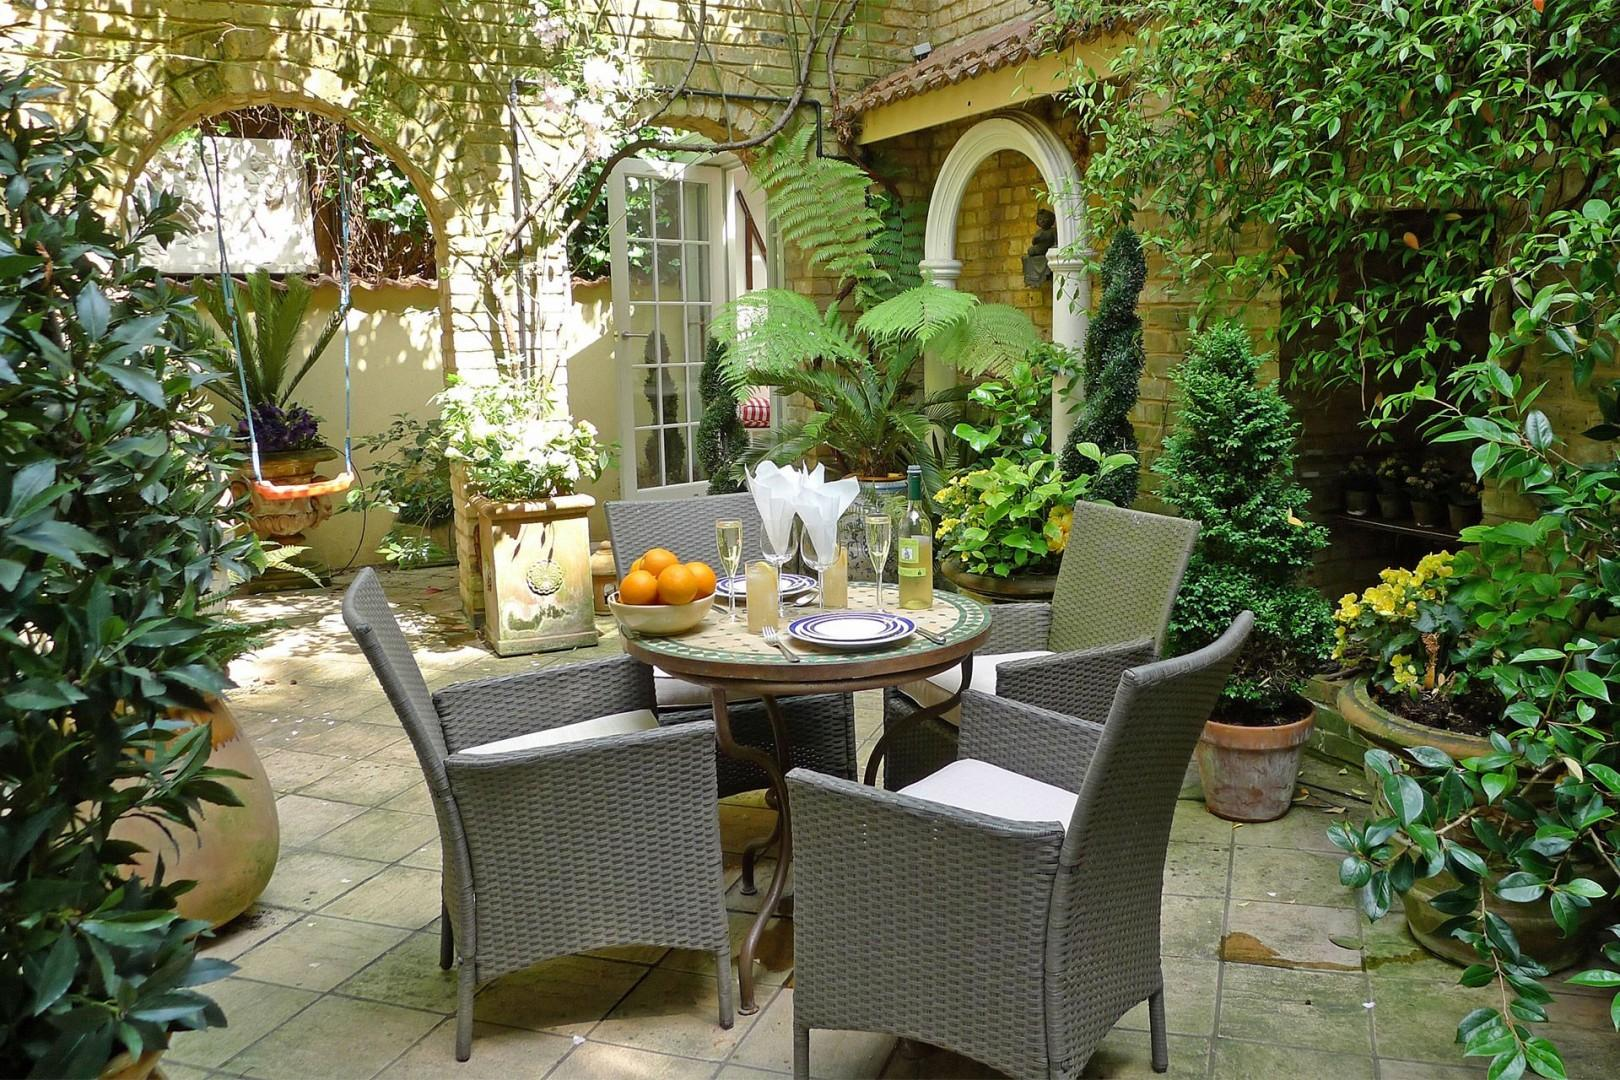 Relax in your patio garden after a long day of sightseeing